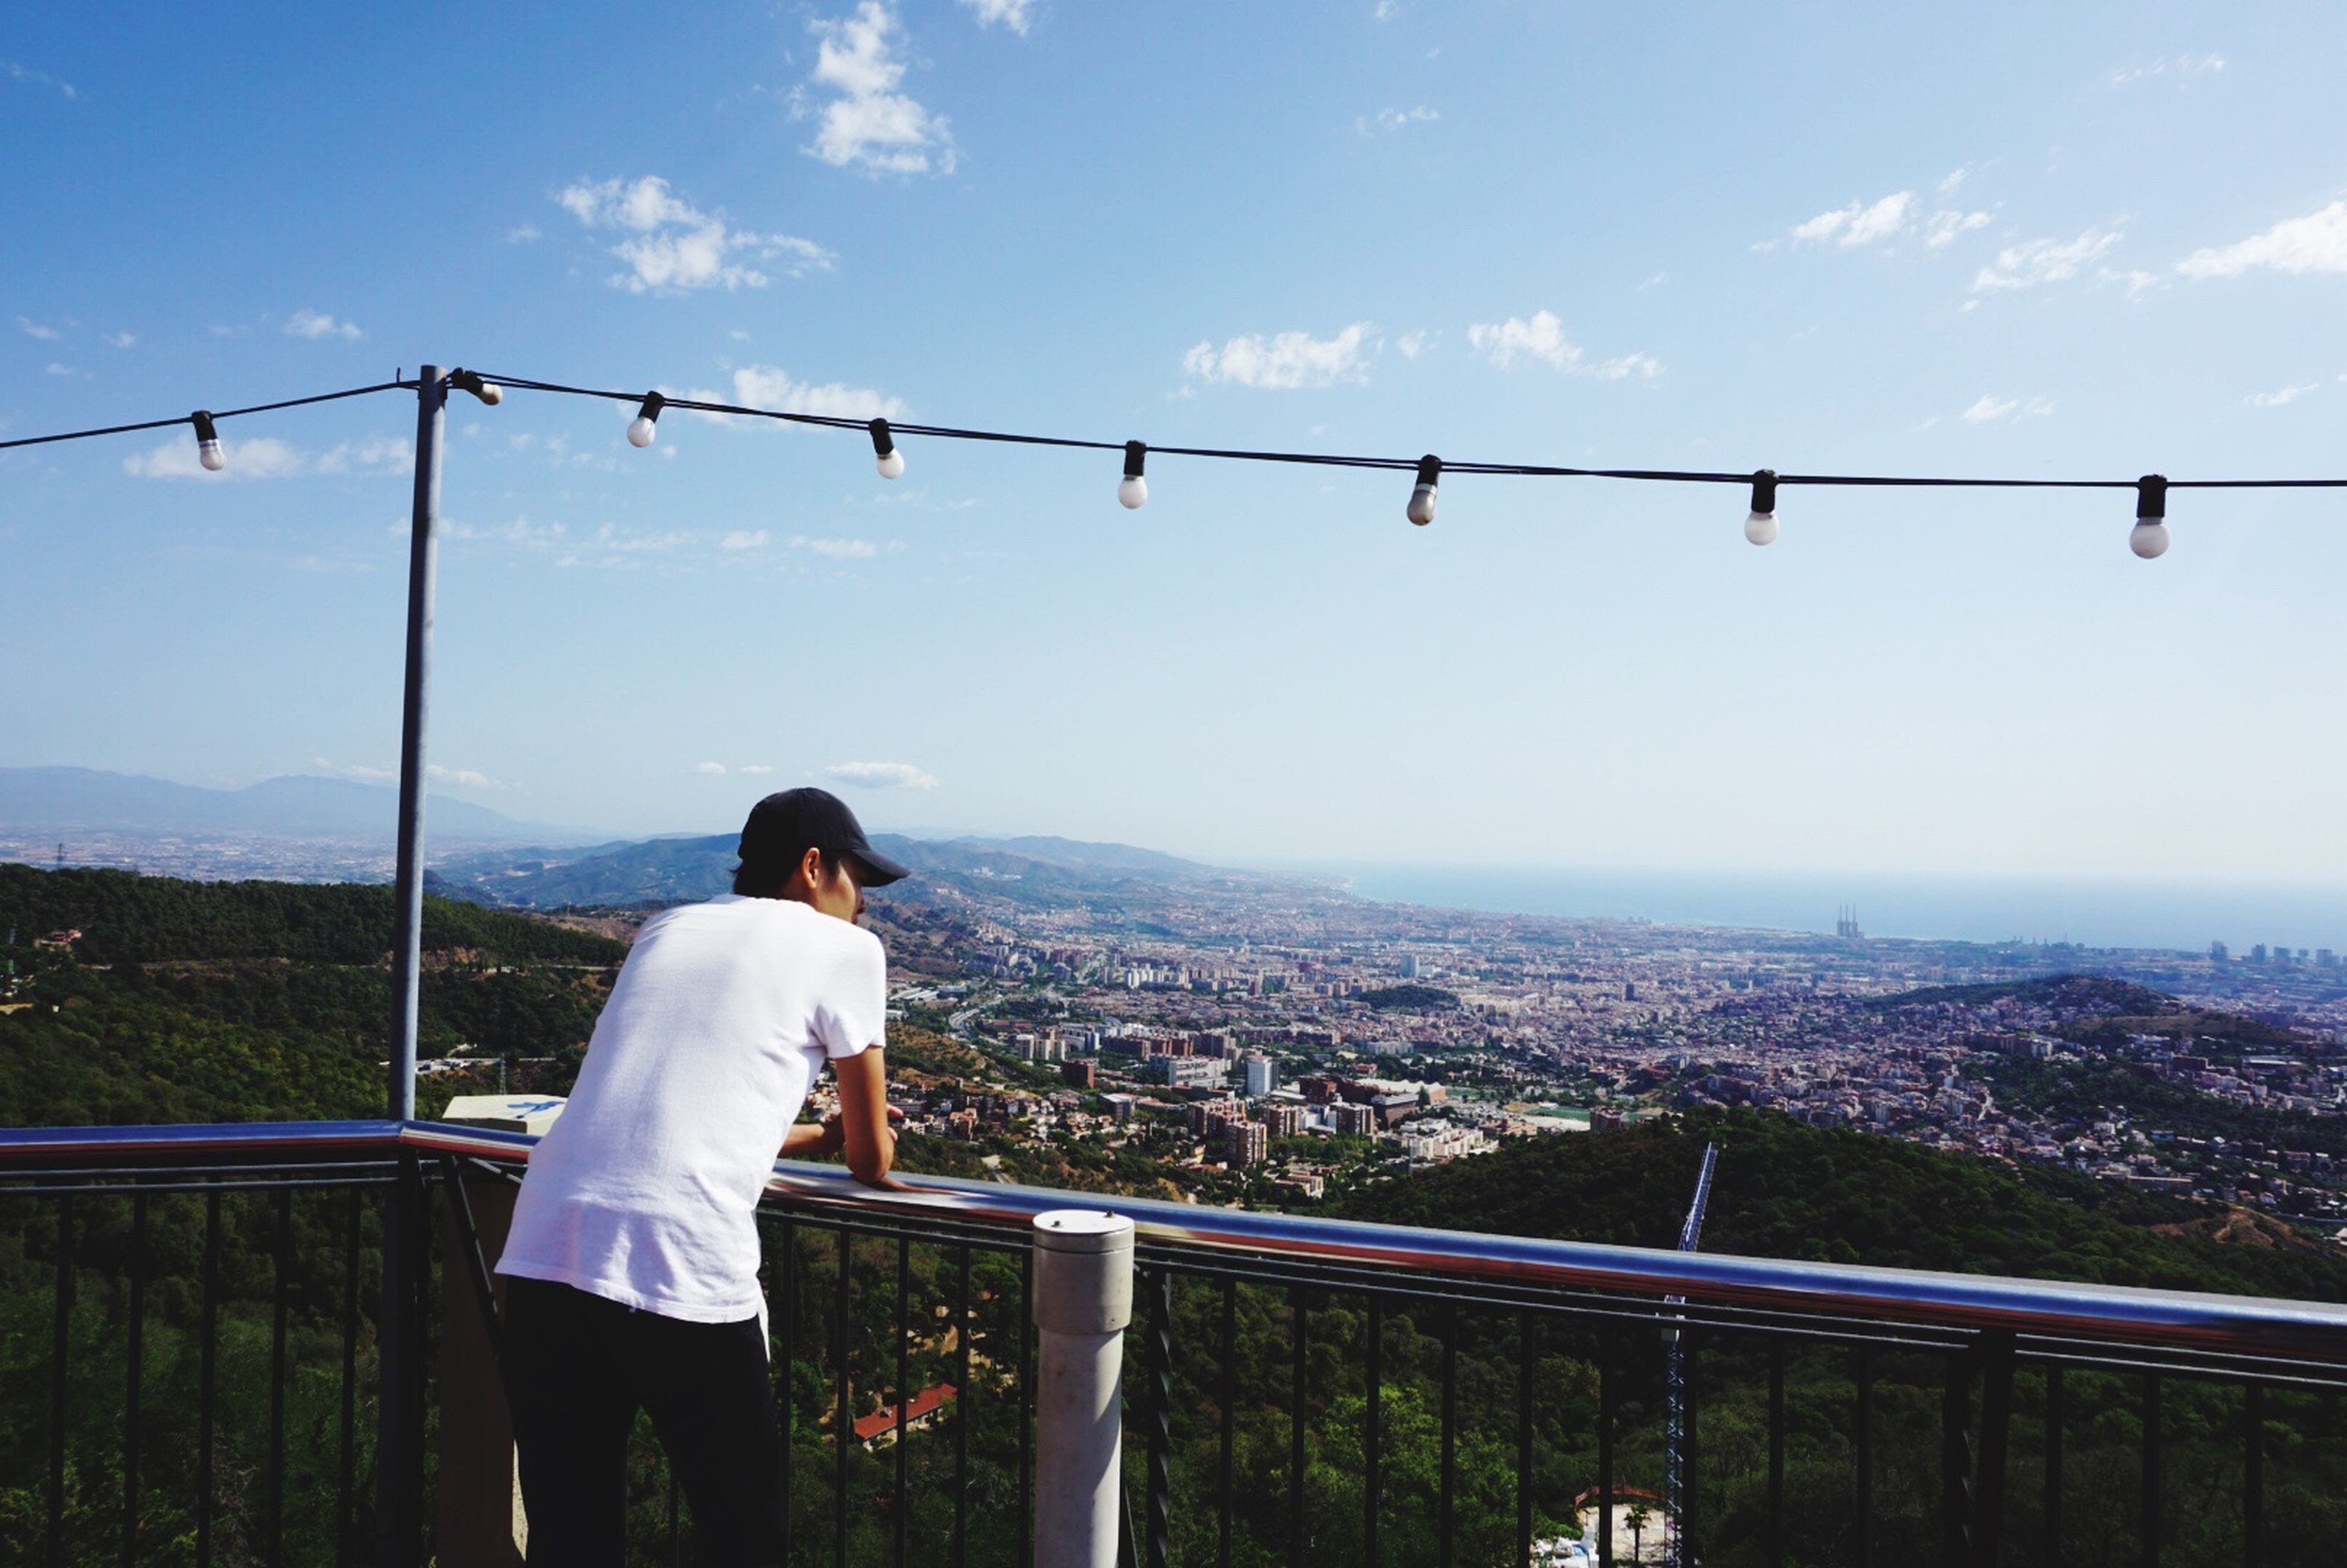 childhood, leisure activity, rear view, standing, lifestyles, sky, landscape, built structure, balcony, looking at view, railing, casual clothing, blue, cityscape, cloud - sky, mountain, looking, day, scenics, outdoors, carefree, remote, observation point, nature